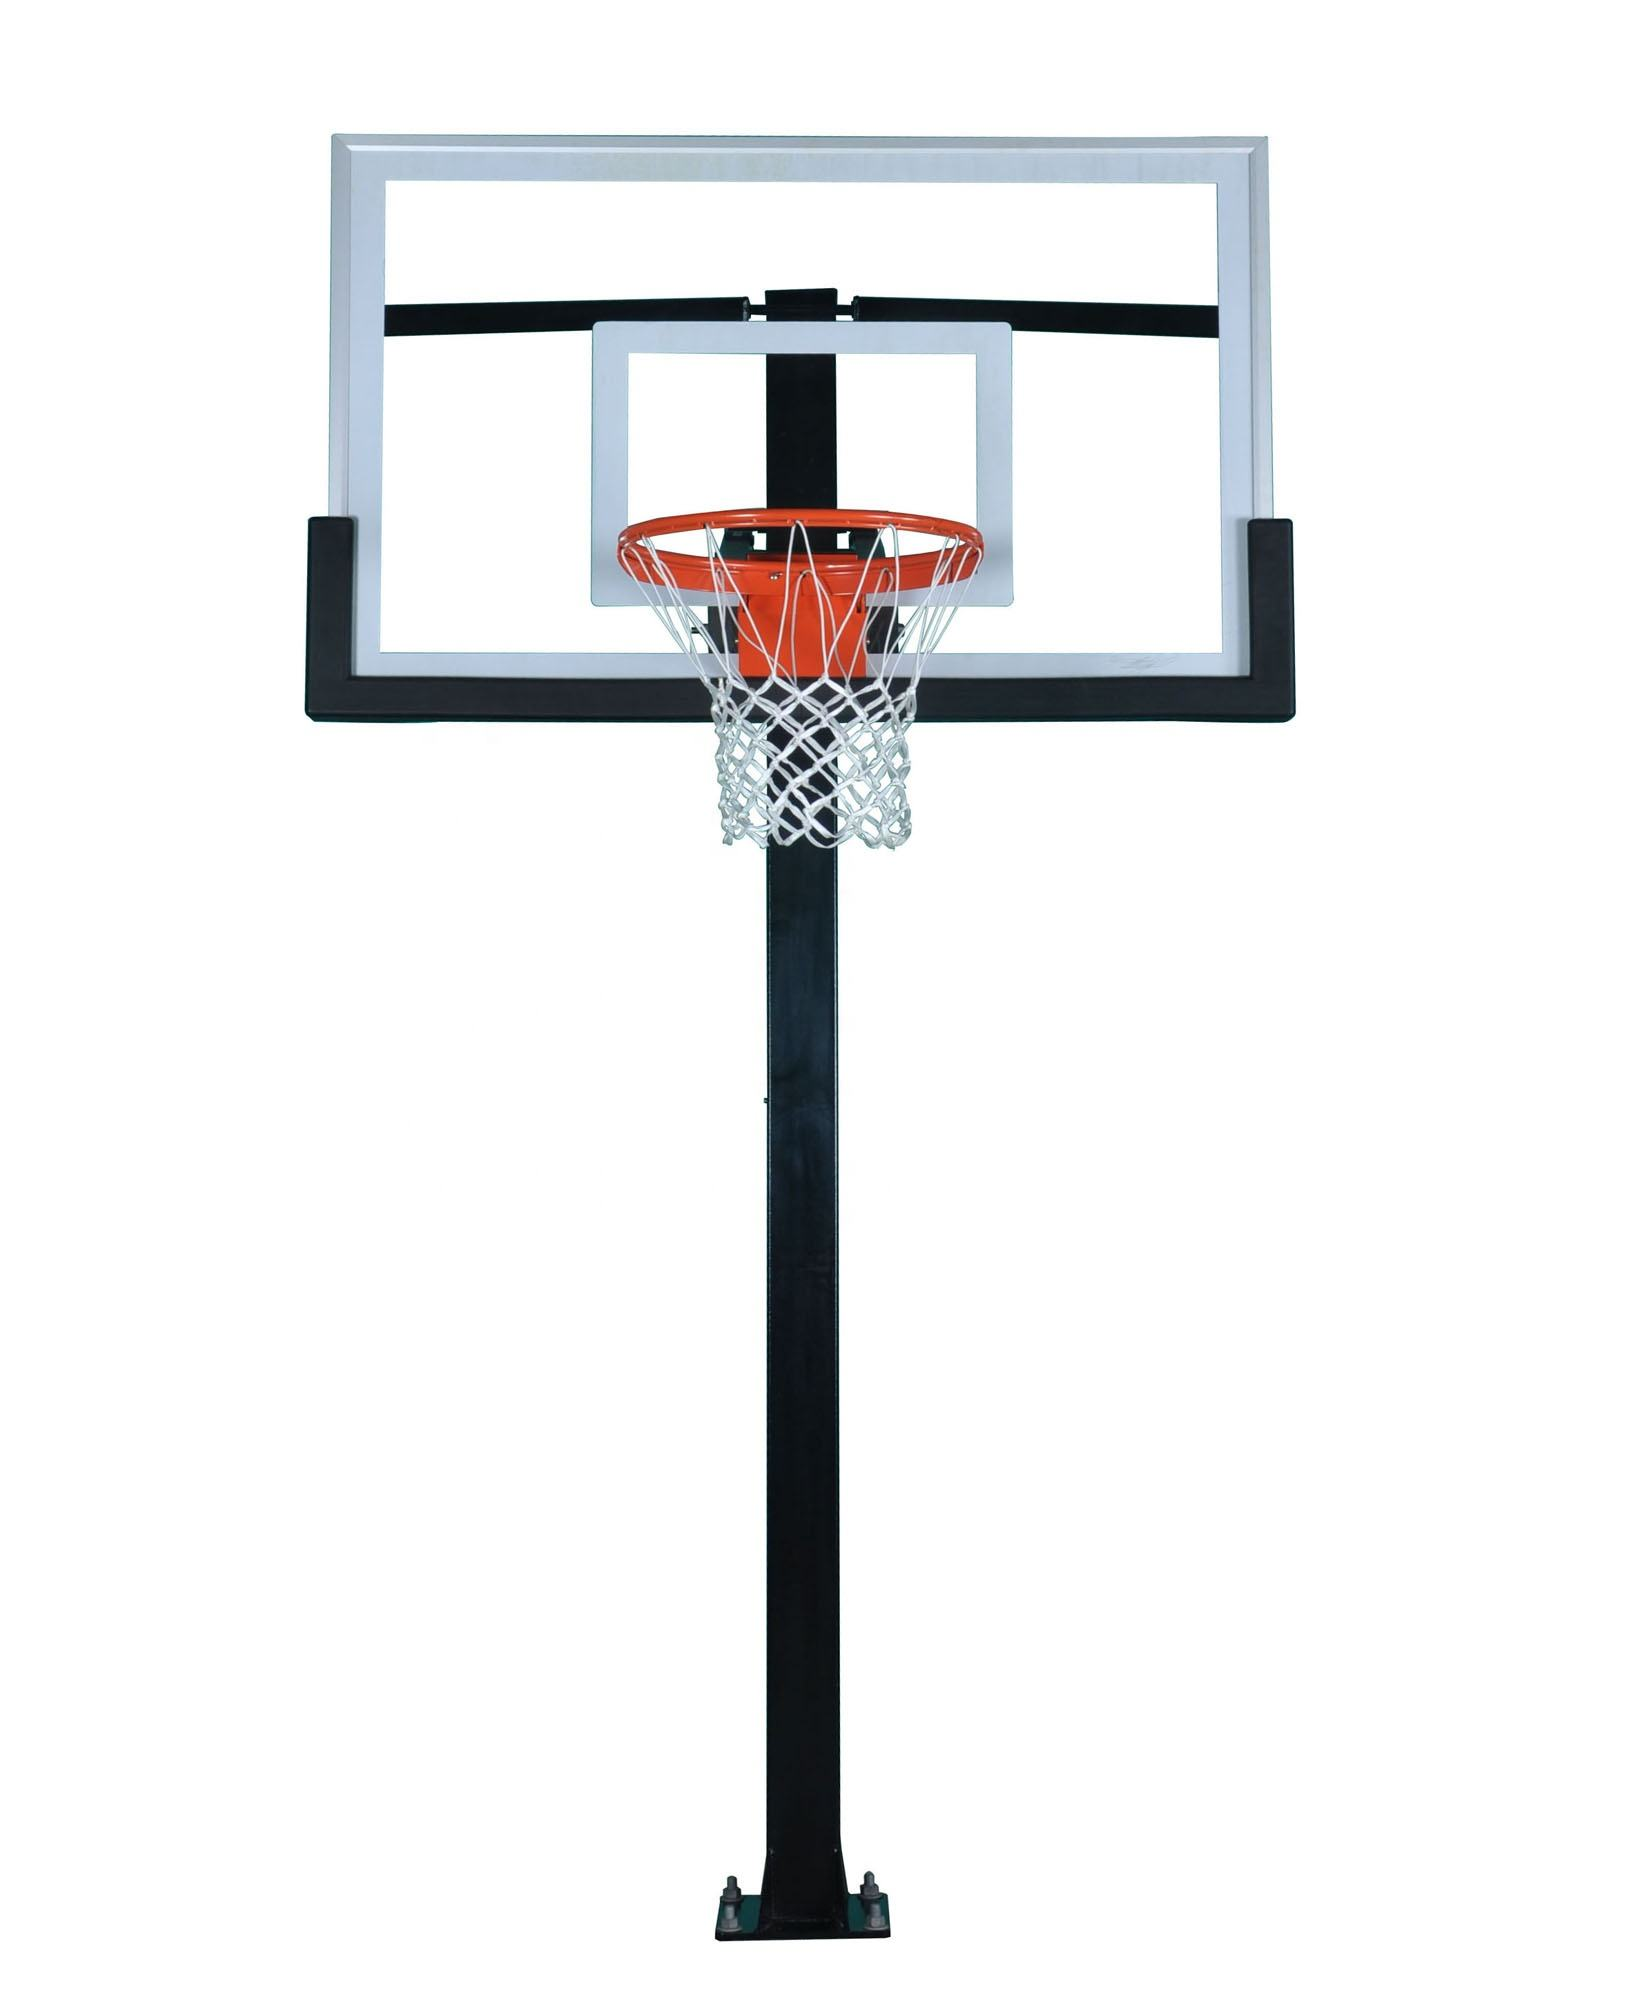 CV72S Ring <span class=keywords><strong>Basket</strong></span> IN-GROUND Awet dengan BACKBOARD 72 Inci